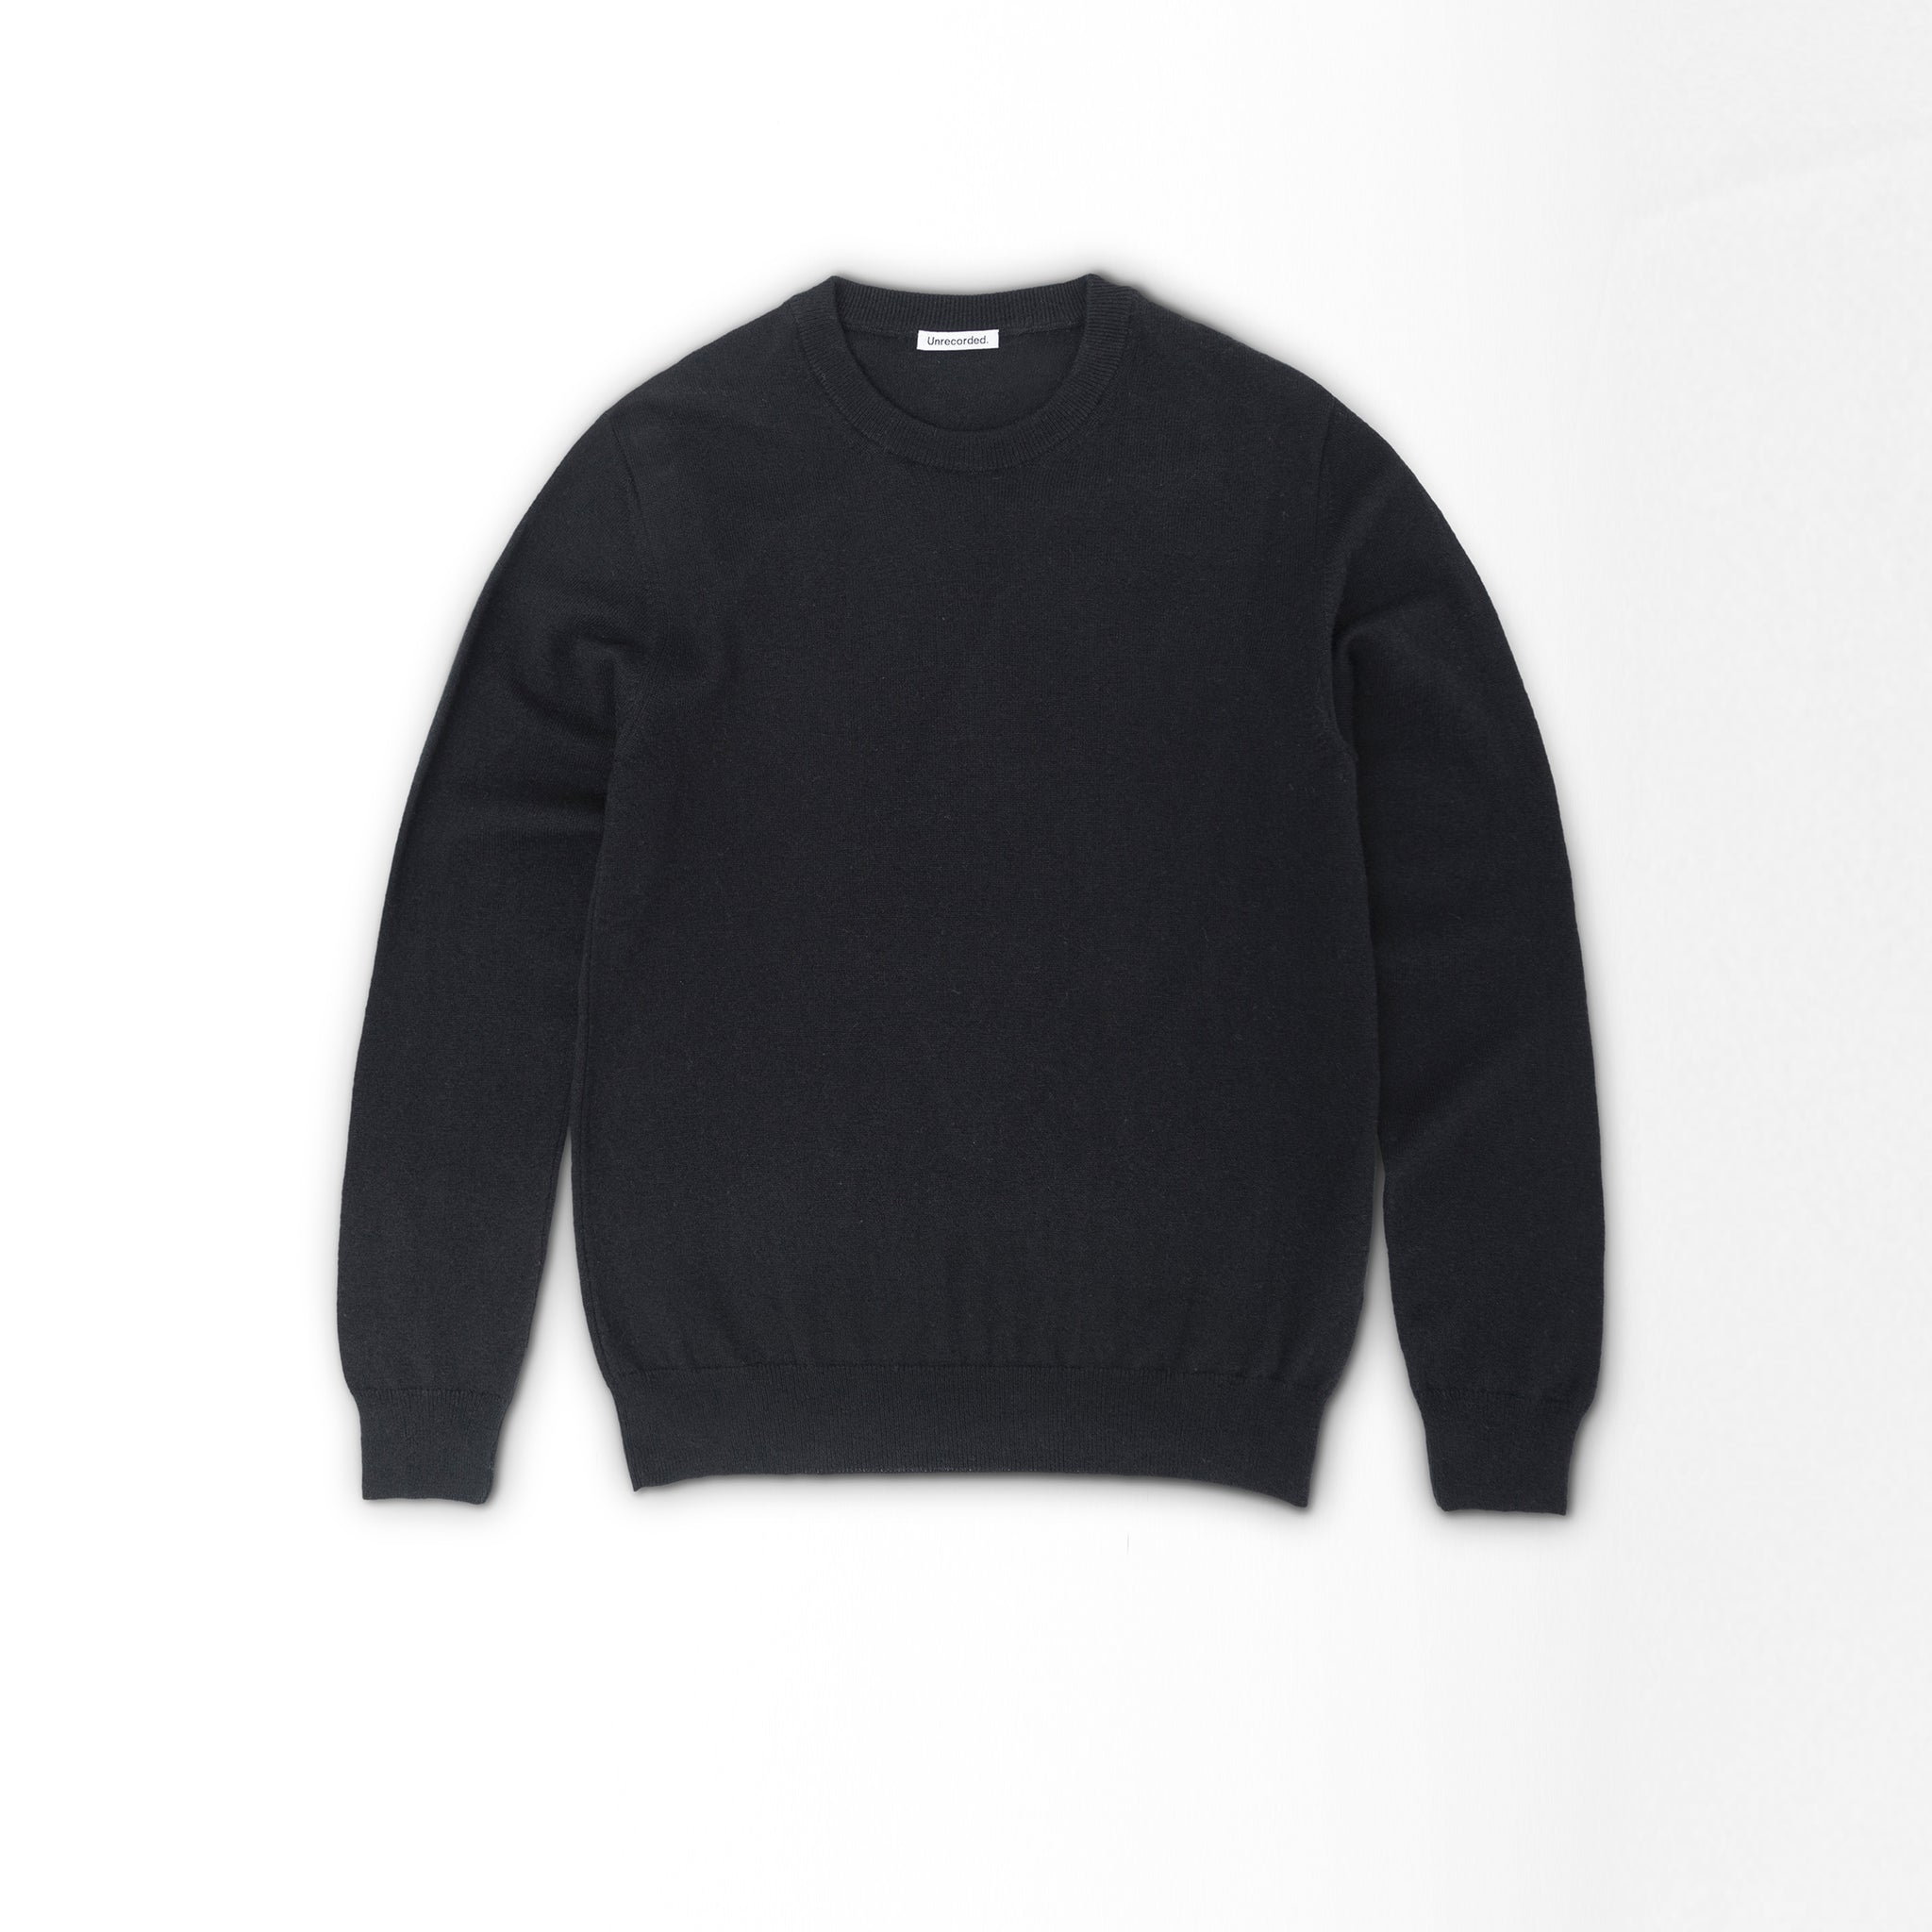 Lambswool Sweater in Black made from organic Wool - Alternate